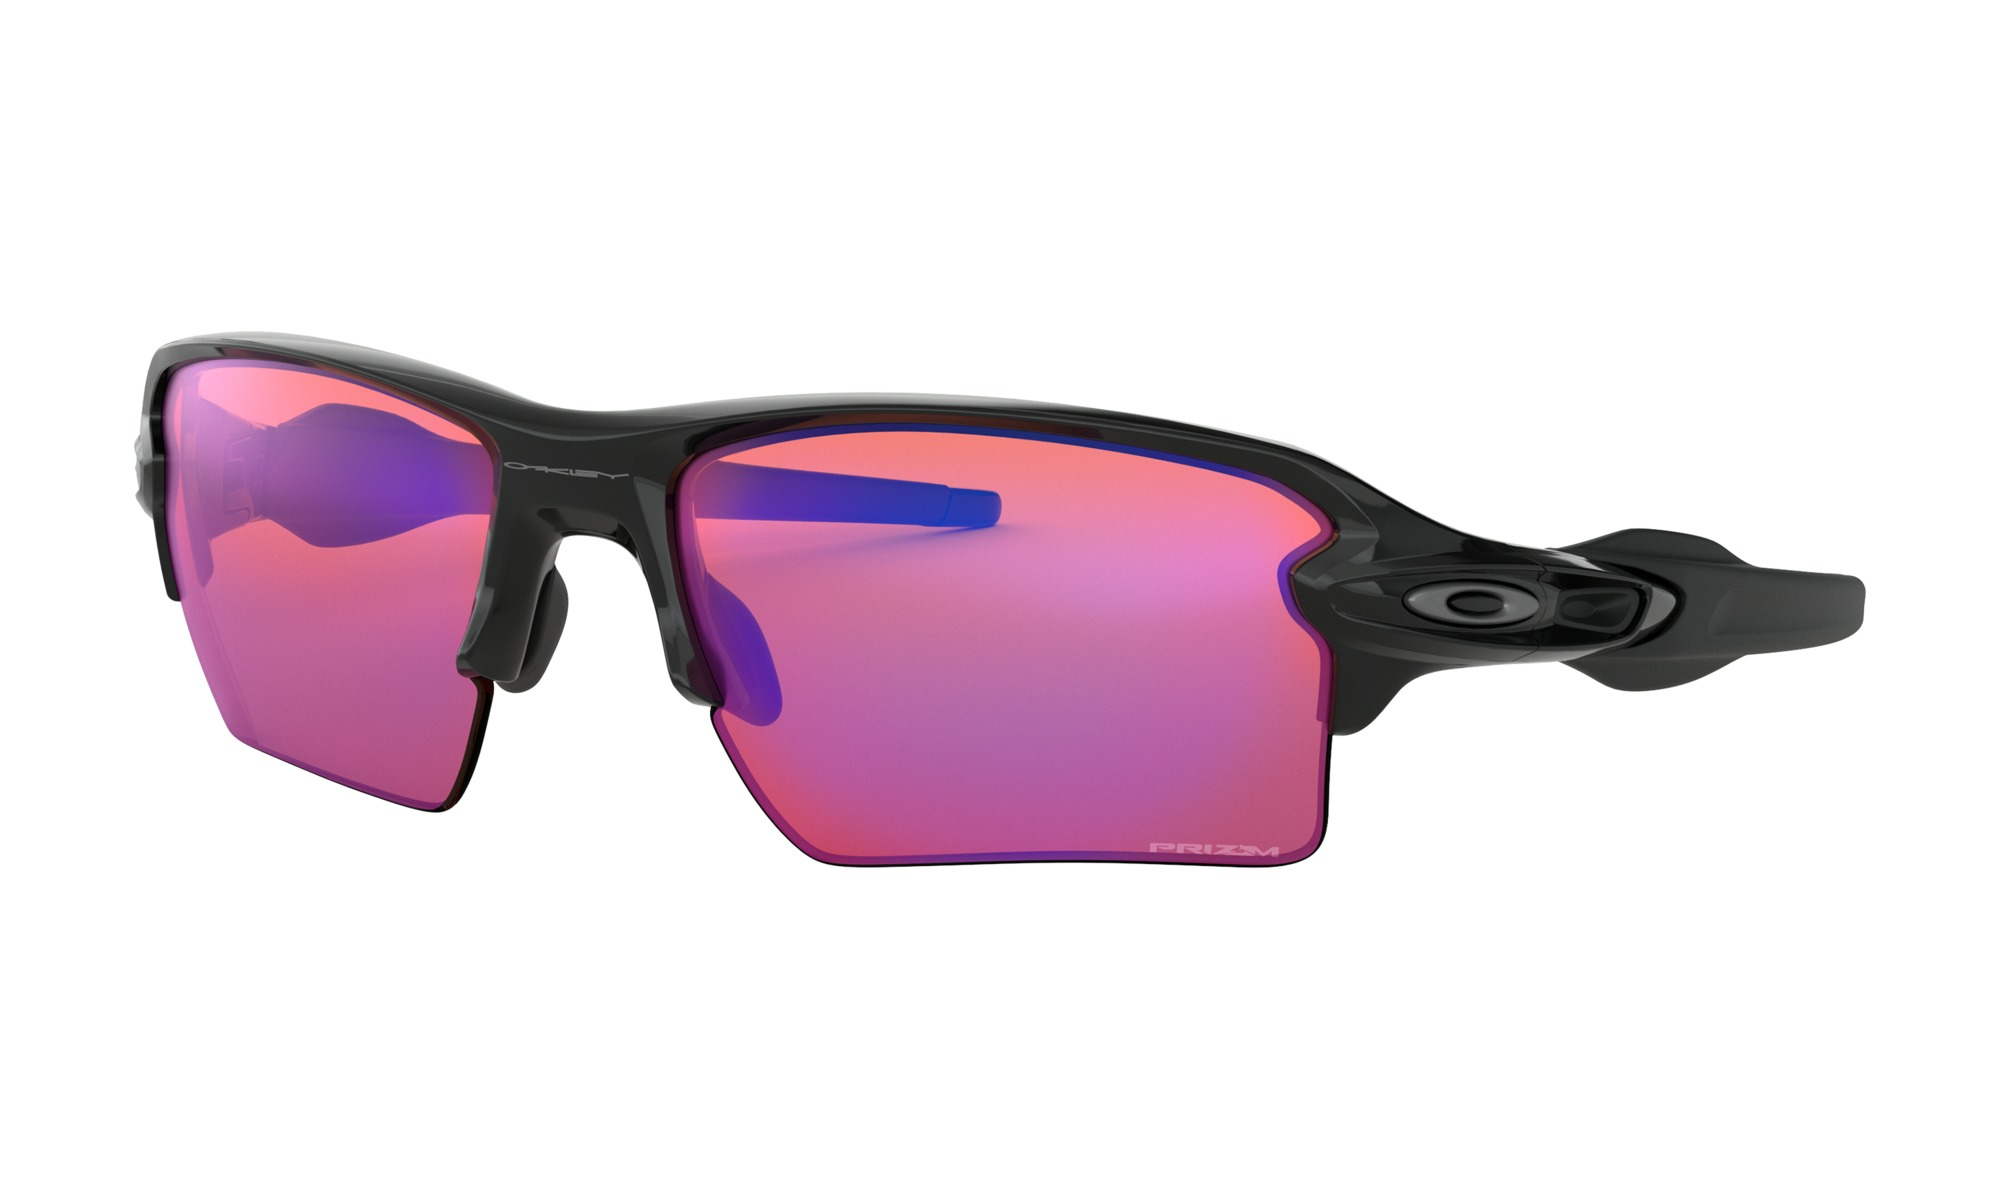 FLAK™ 2.0 XL PRIZM™ TRAIL - Oakley engineering takes performance to the next level. Flak 2.0 offers a standard size frame with enhanced lens coverage.